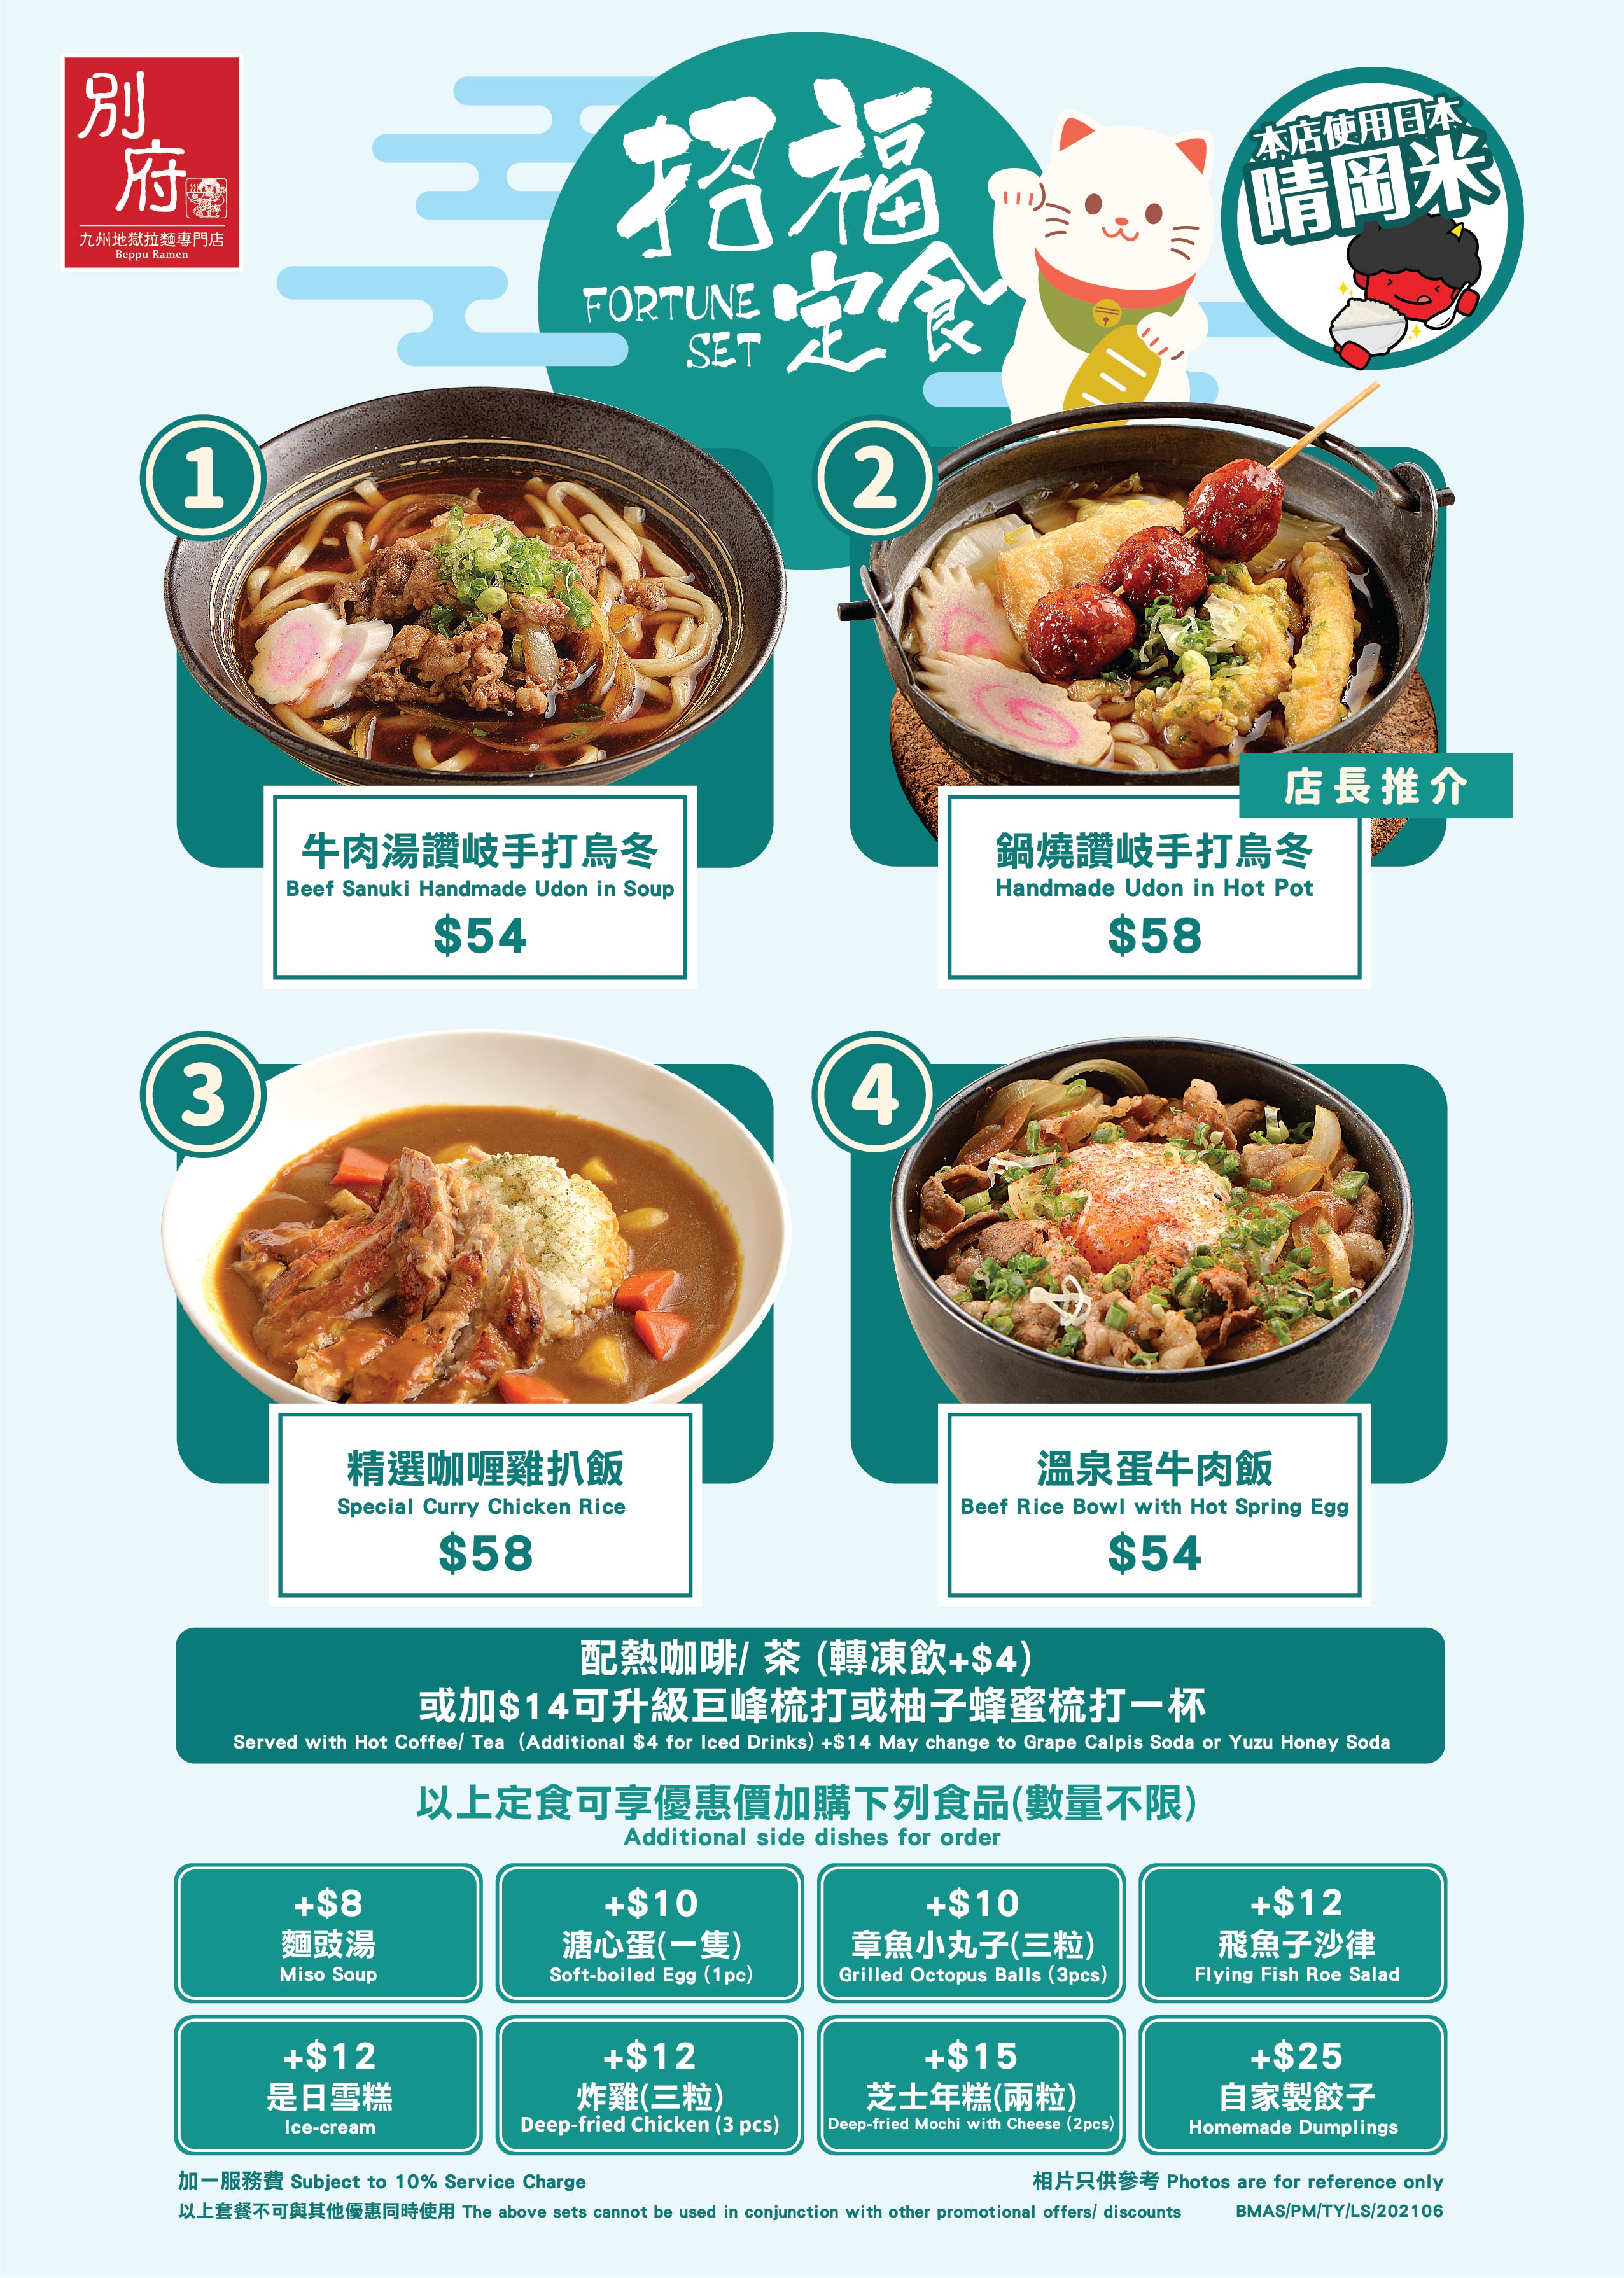 BM_招福_Lunch Special_202106_AS_PM_TY_1